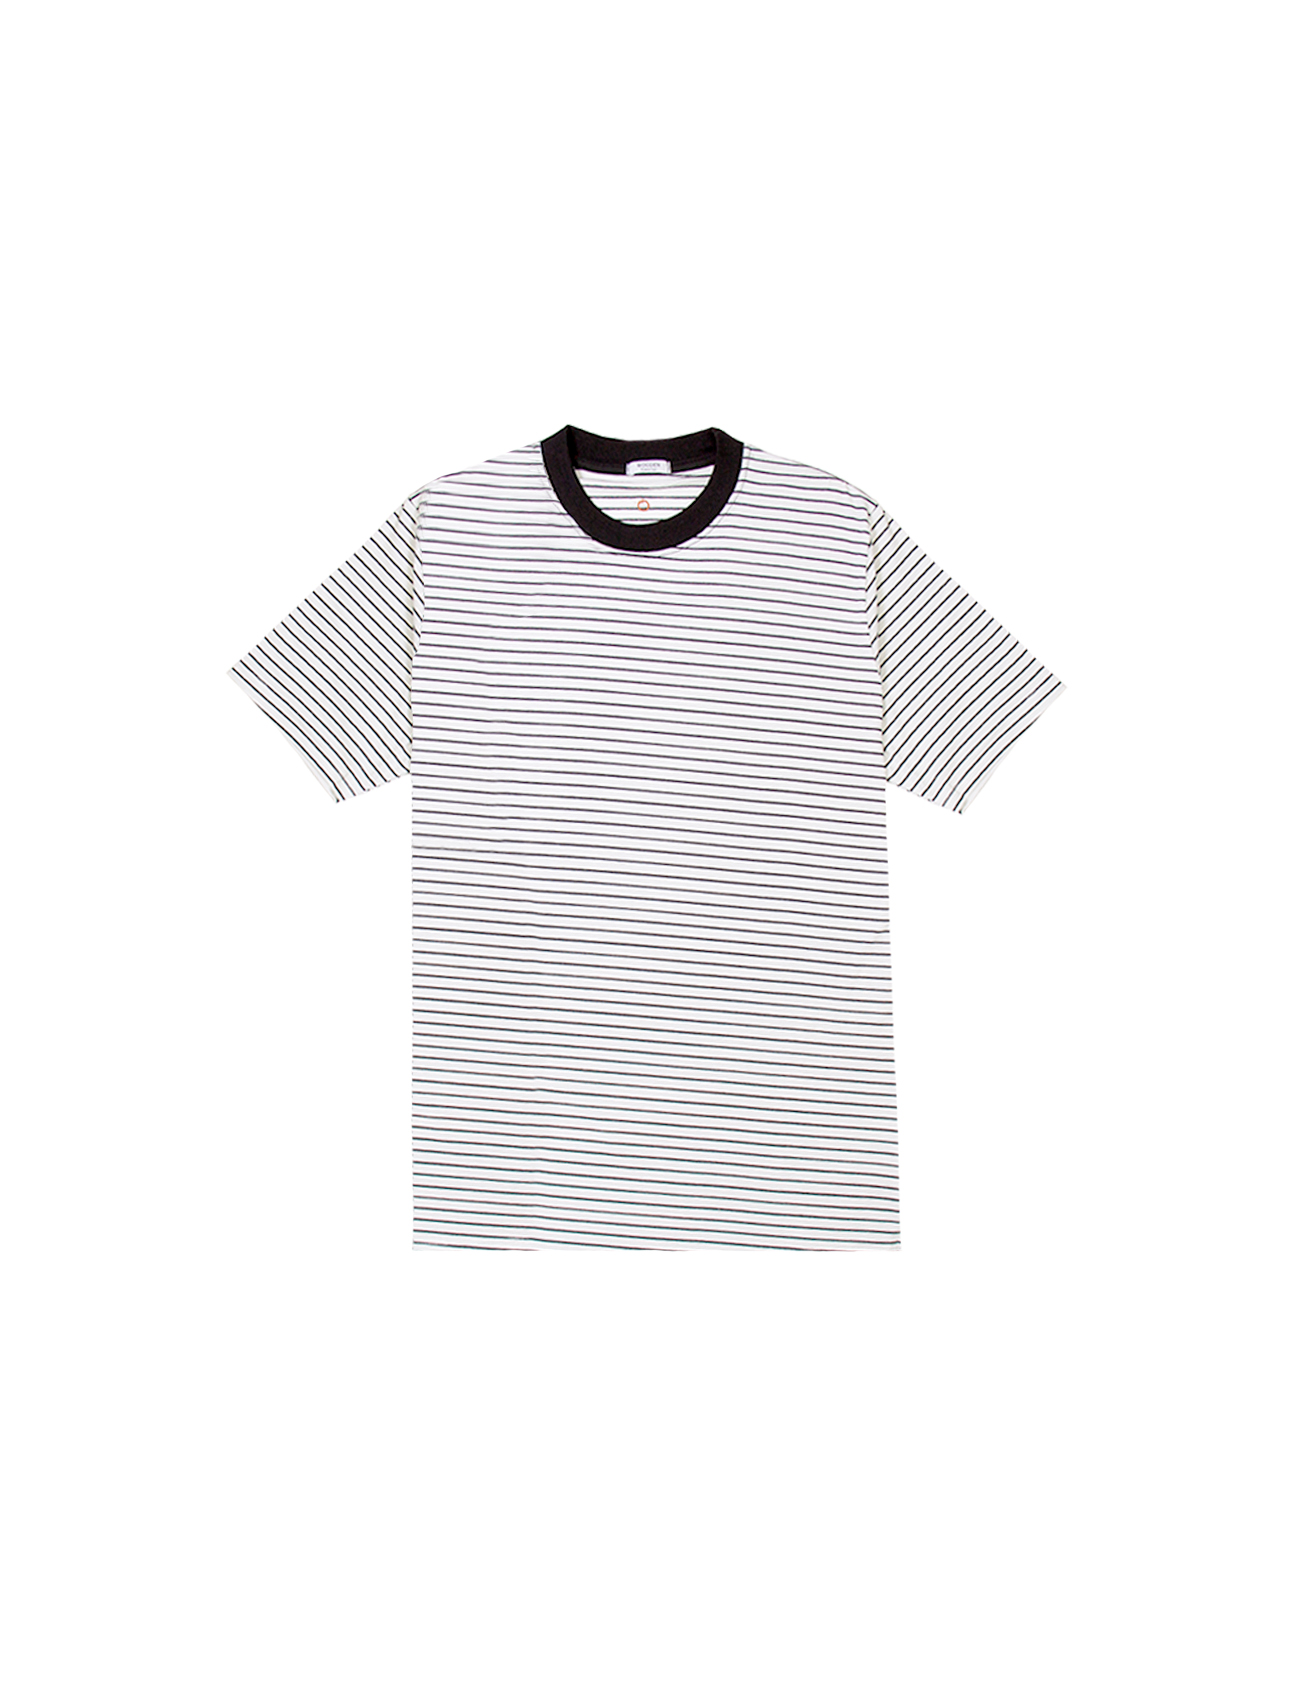 T-Shirt Righe Bianche Nere | Wooden Store